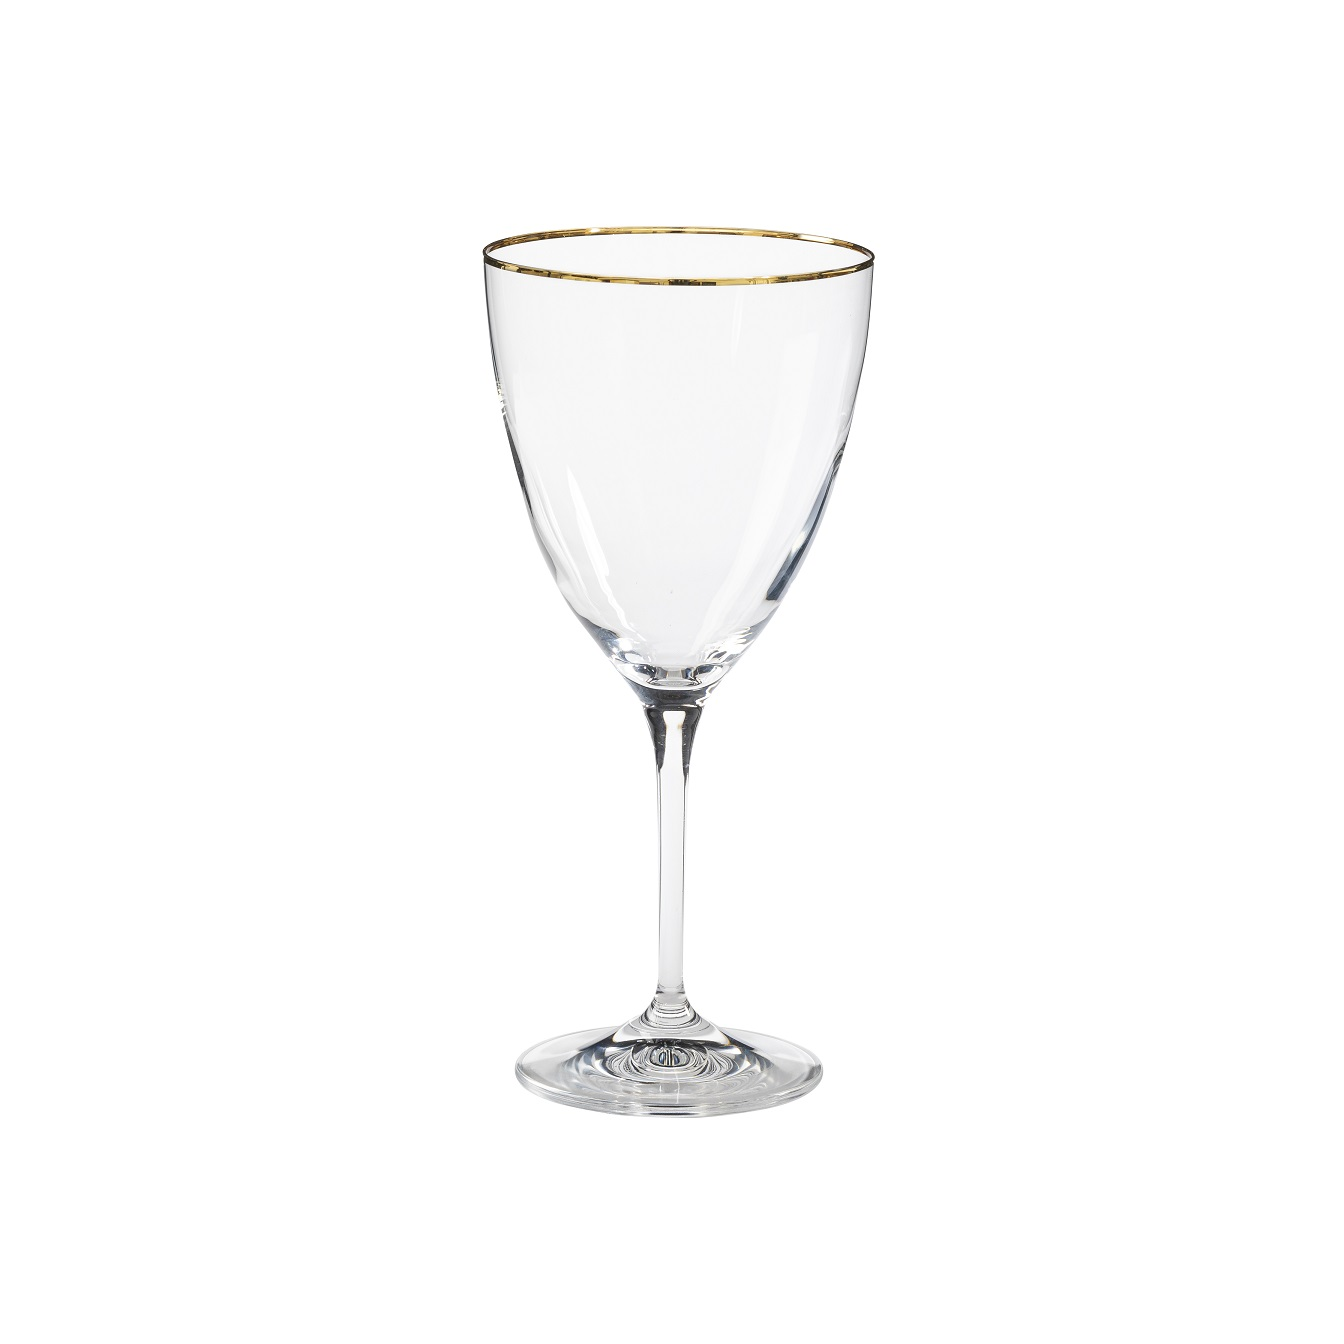 Sensa Water Glass 400ml Golden Rim Sparkle Gift